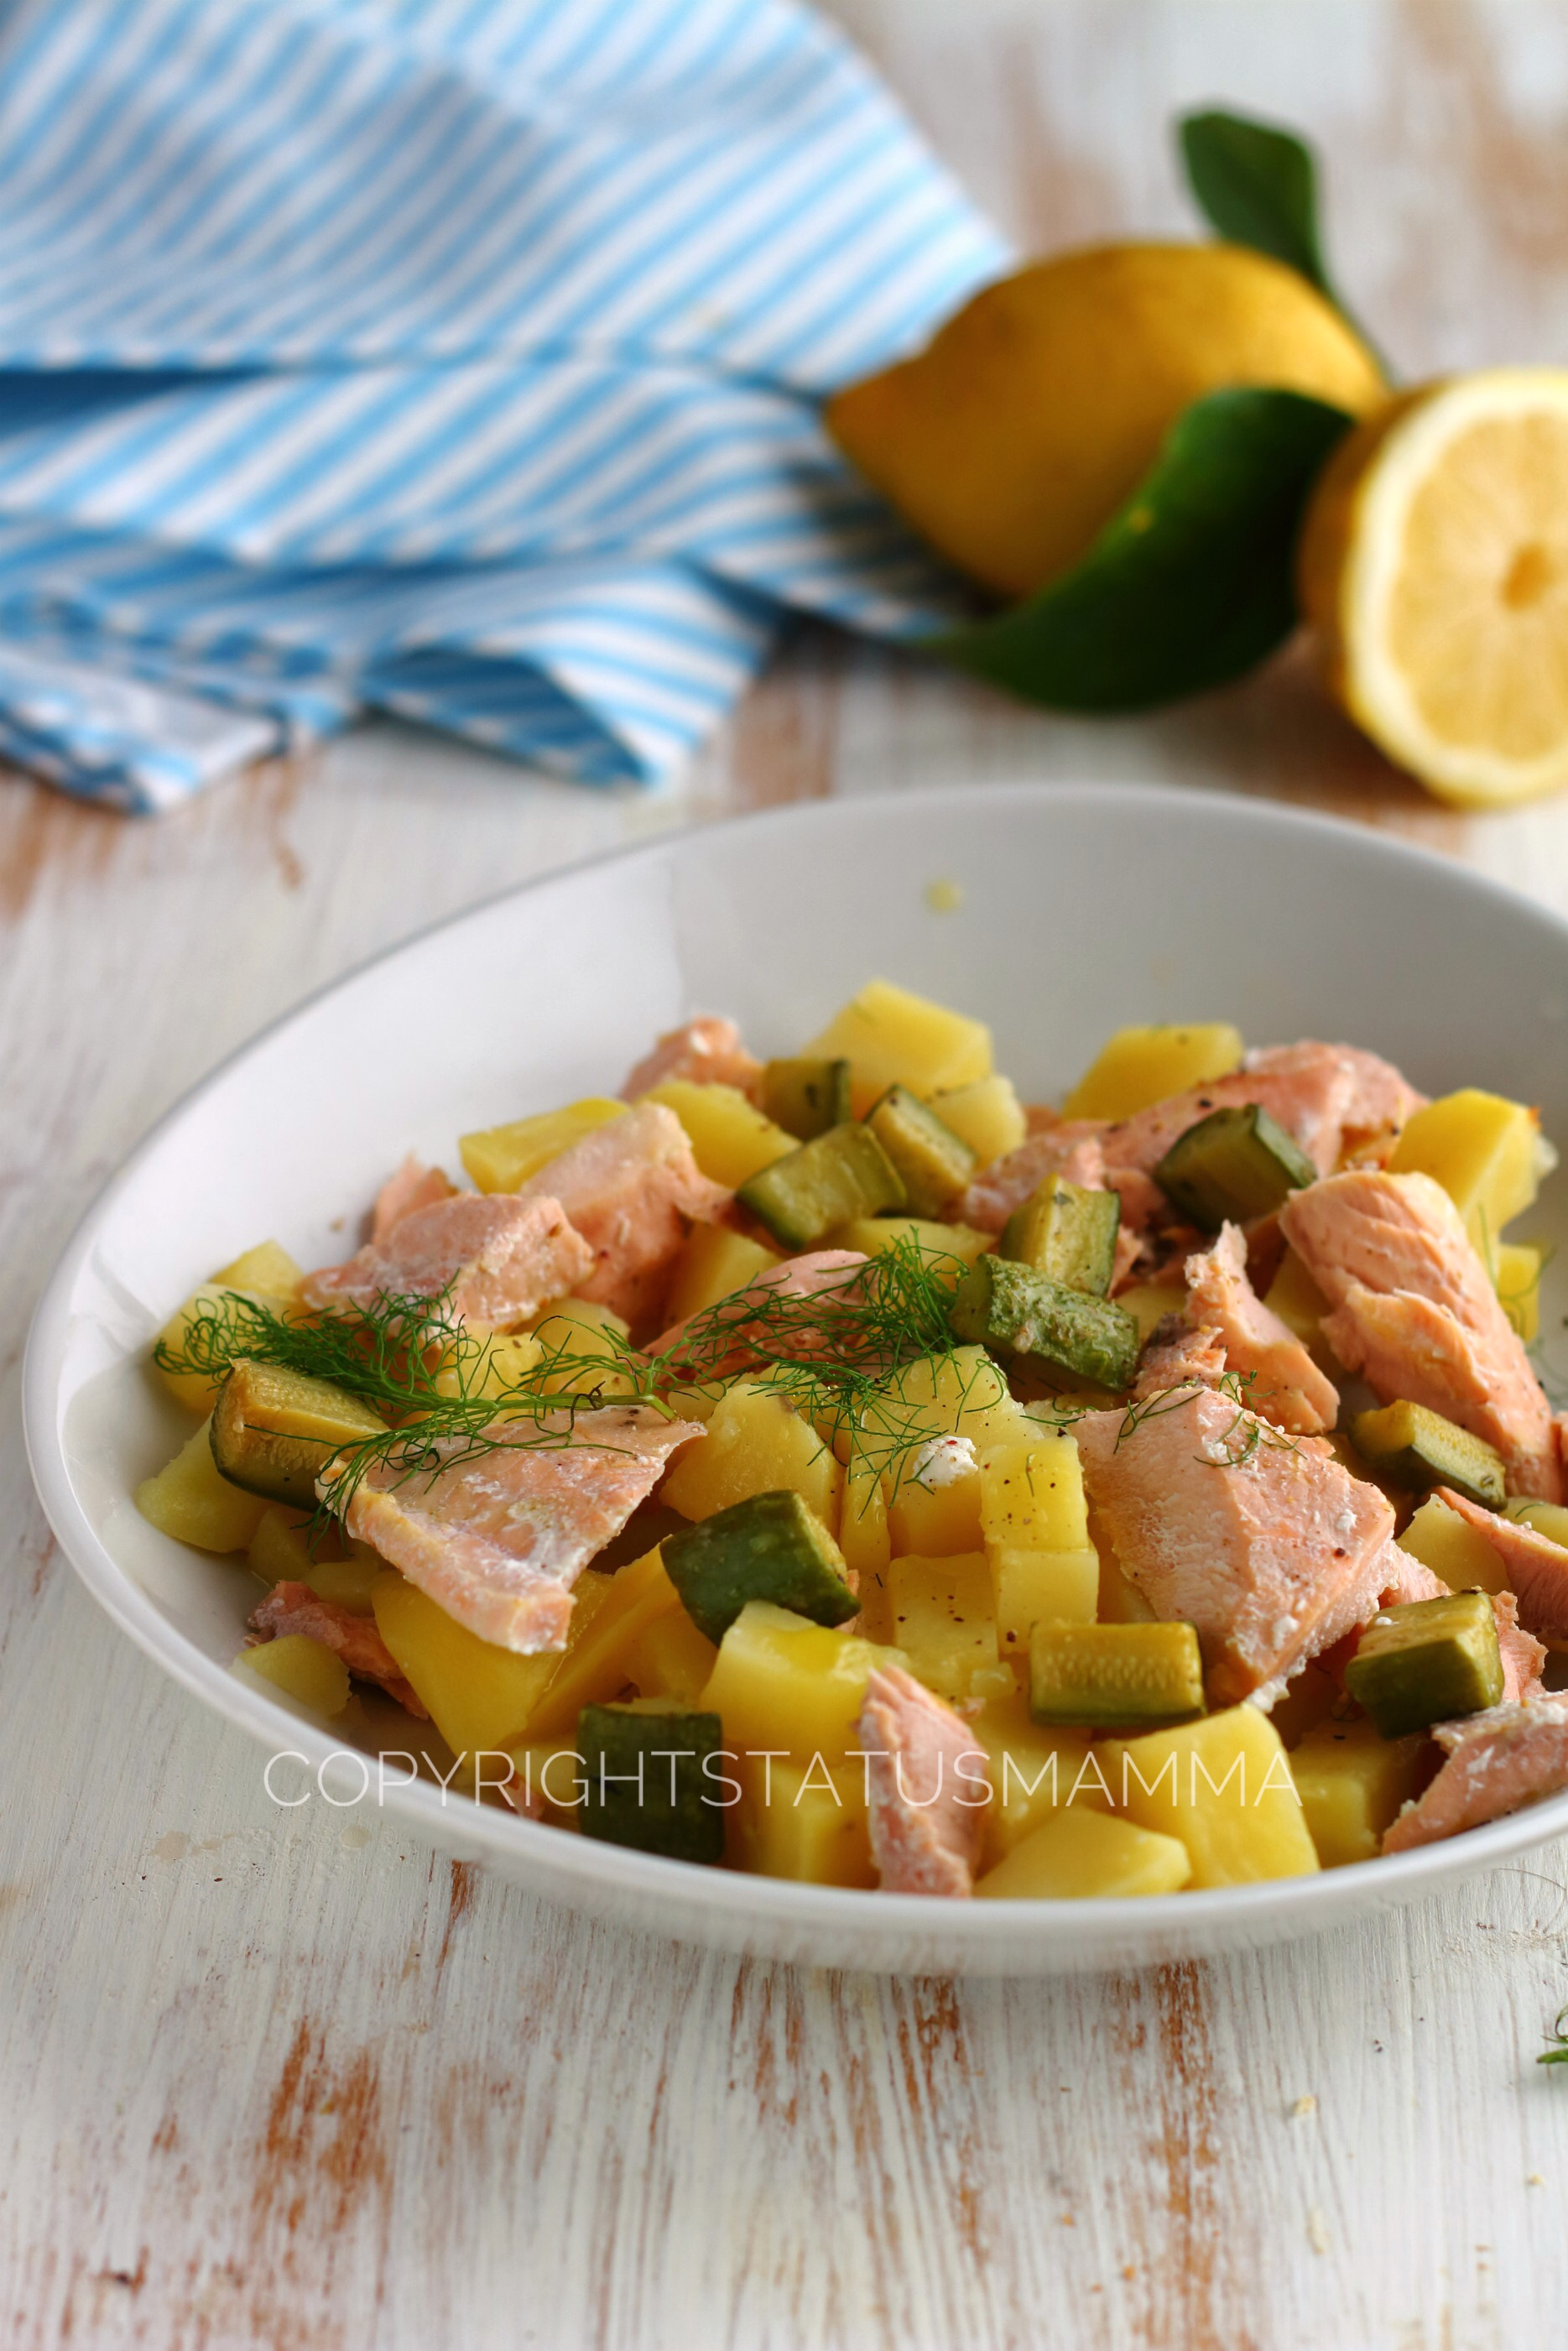 Insalata di salmone e patate profumata all'aneto e limone photo food photograpy